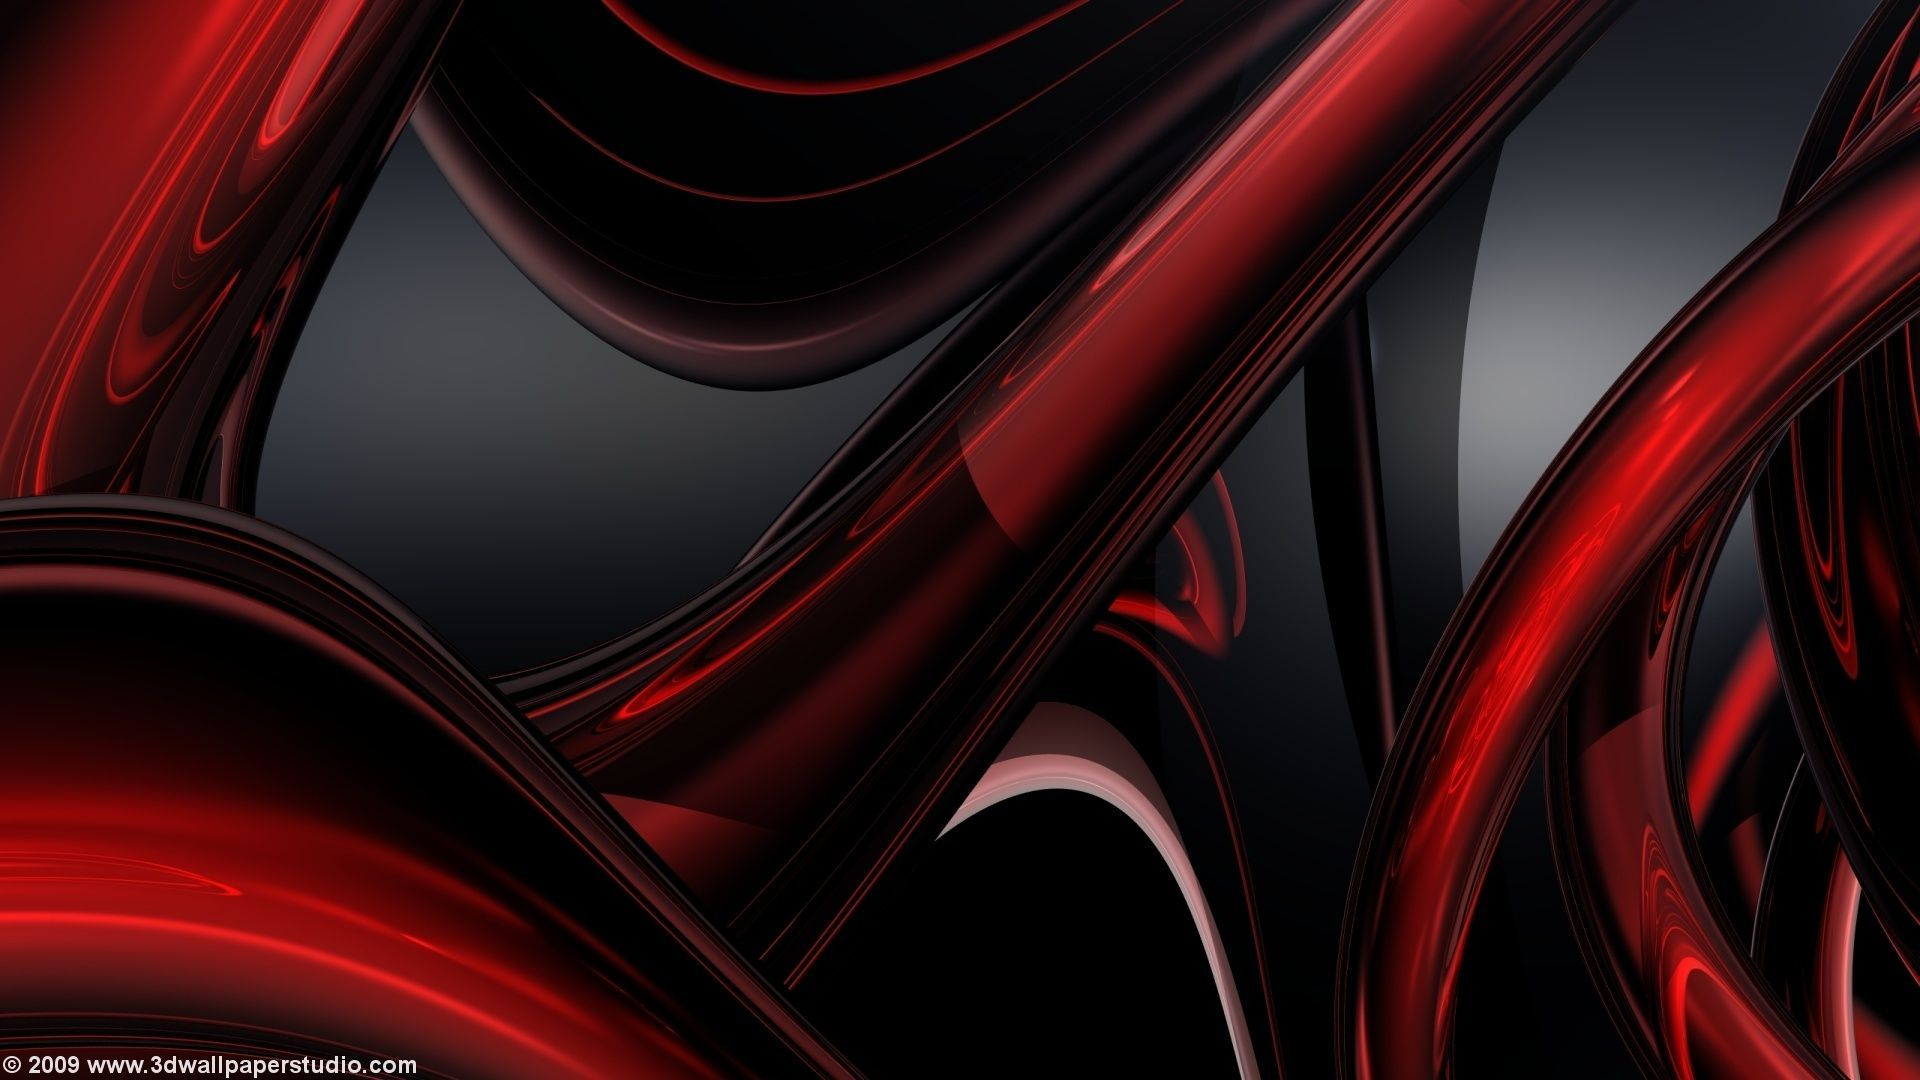 Free Download Black And Red Wallpapers Hd 1280x720 For Red Wallpaper Cute Black Wallpaper Red And Black Wallpaper